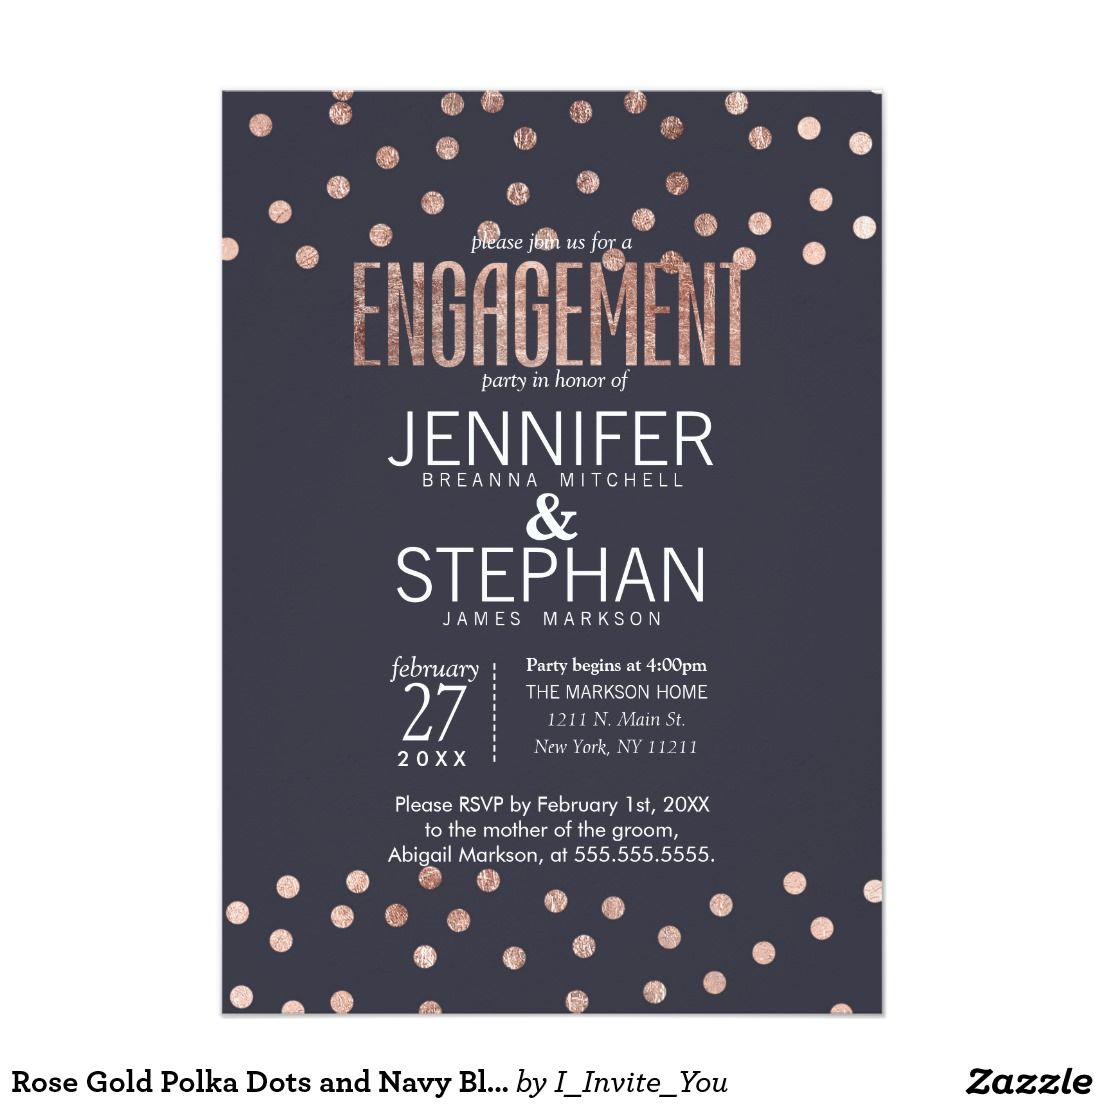 Rose Gold Polka Dots and Navy Blue Engagement